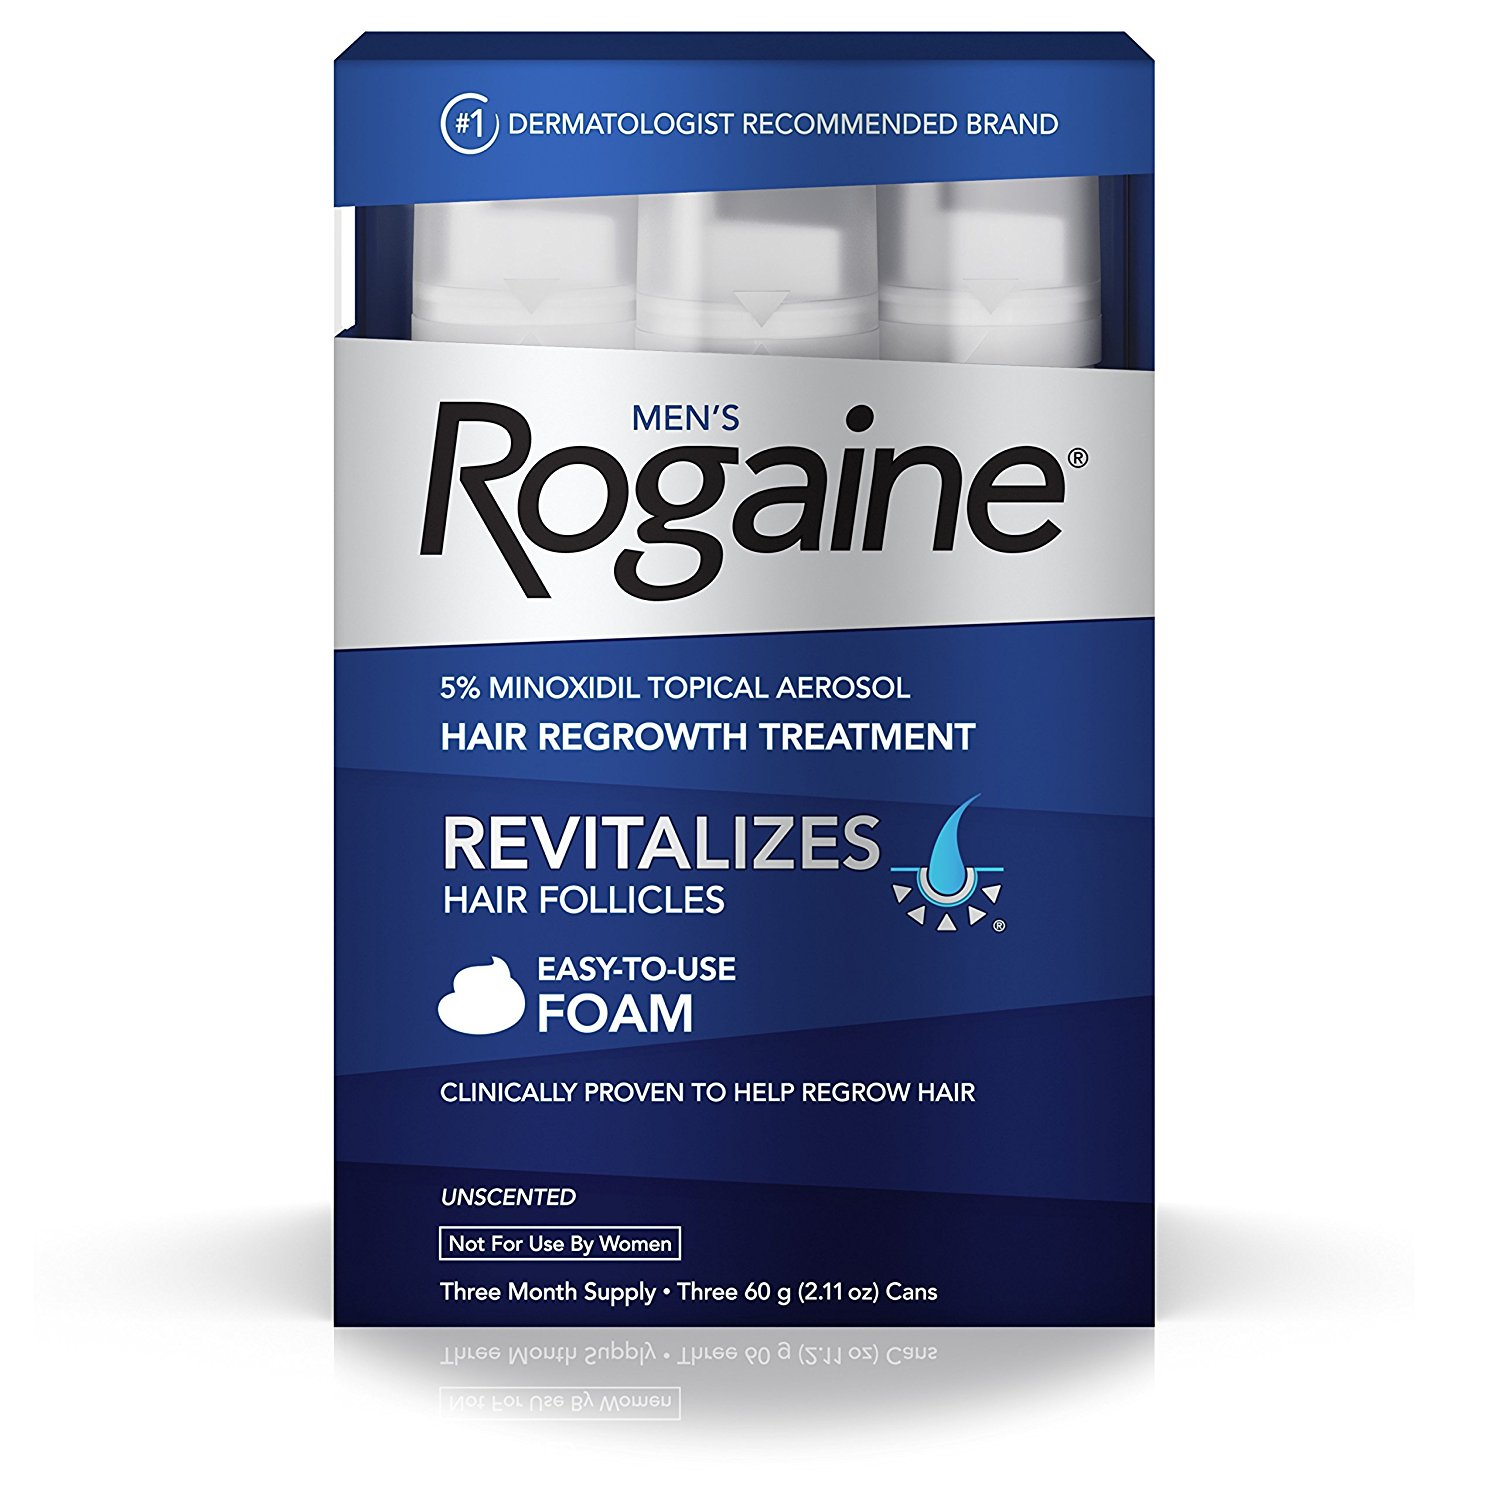 Rogaine Hair Loss & Hair Thinning Treatment - Minoxidil Foam – Available in 6 Pack Sizes